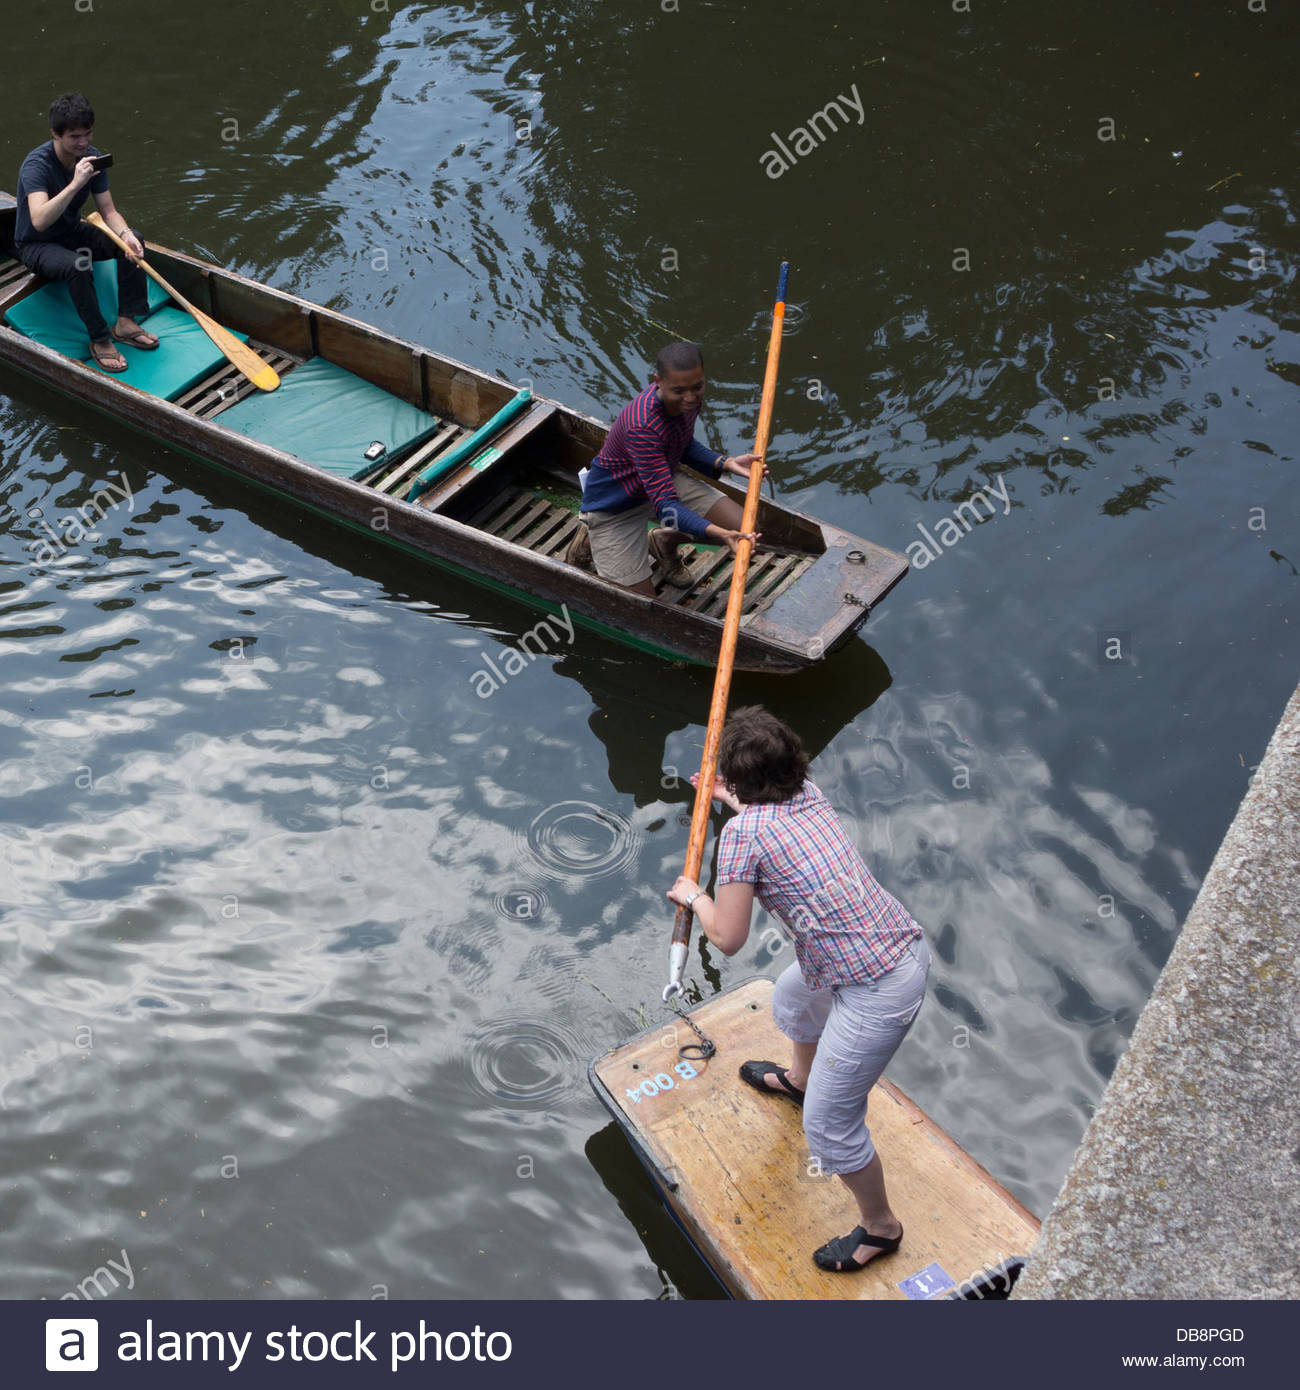 Punting in Cambridge - Punters return the pole to a group of inexperienced punters on the River Cam - Stock Image